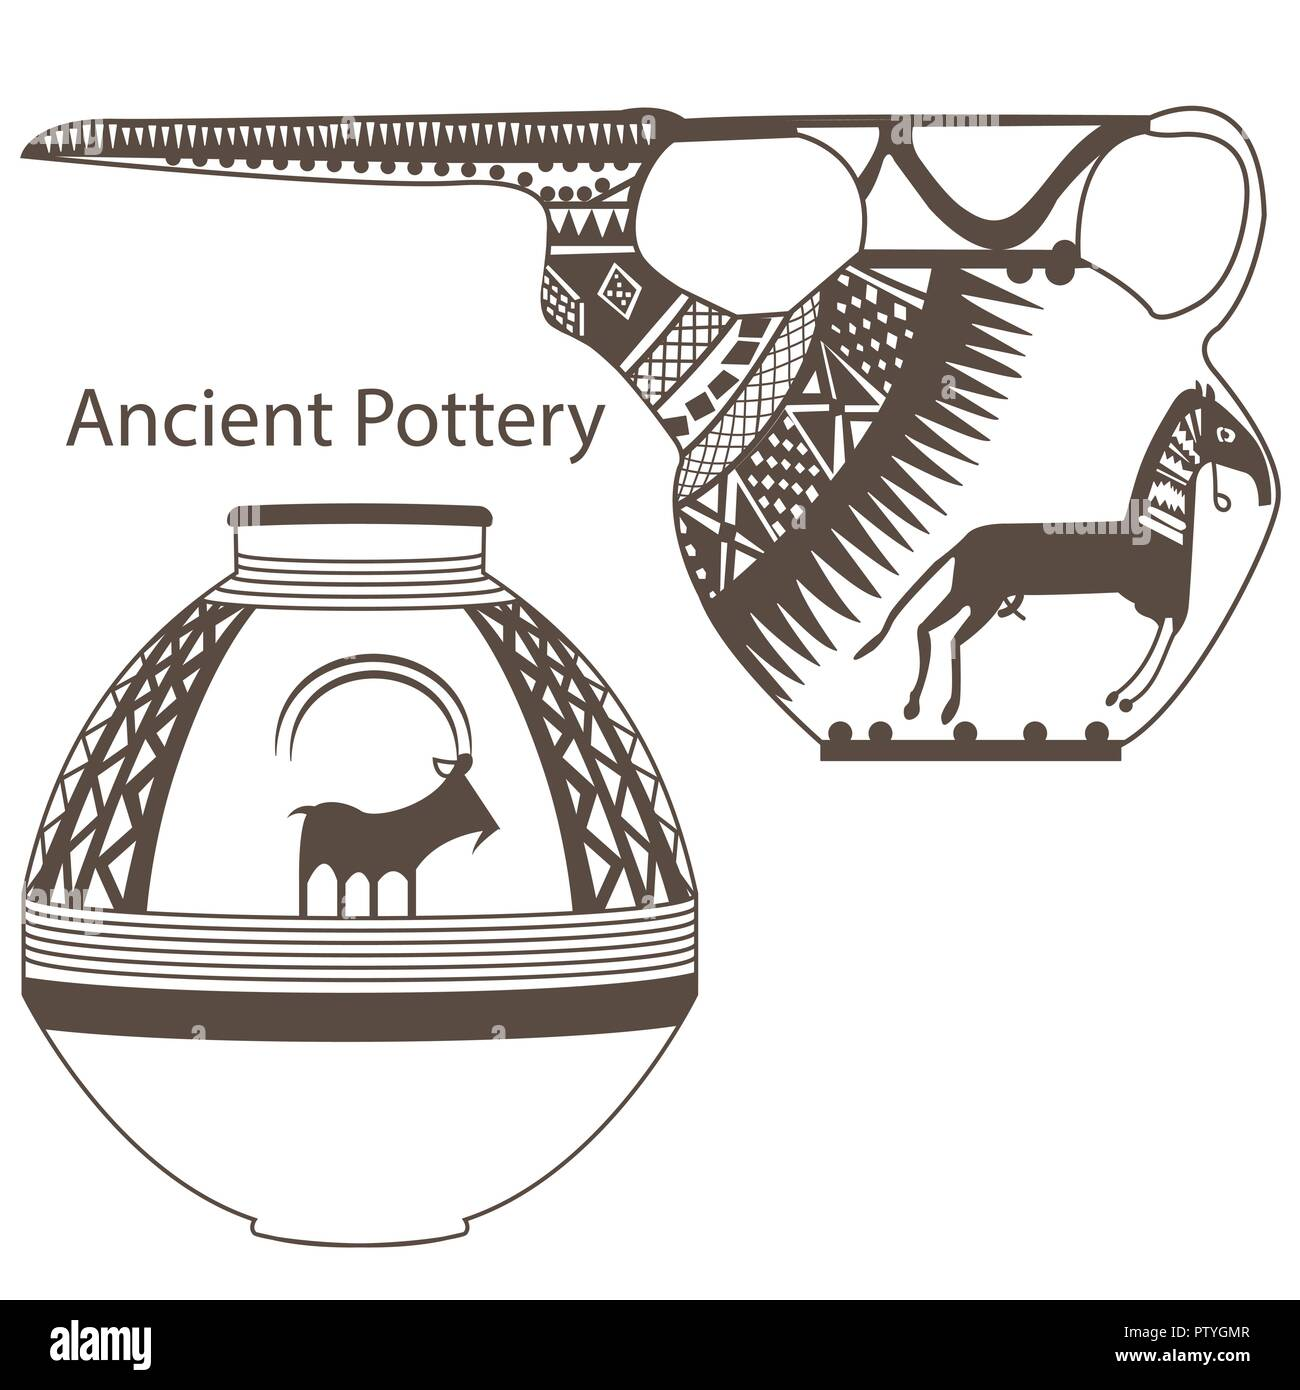 Ancient Pottery Vector - Stock Image